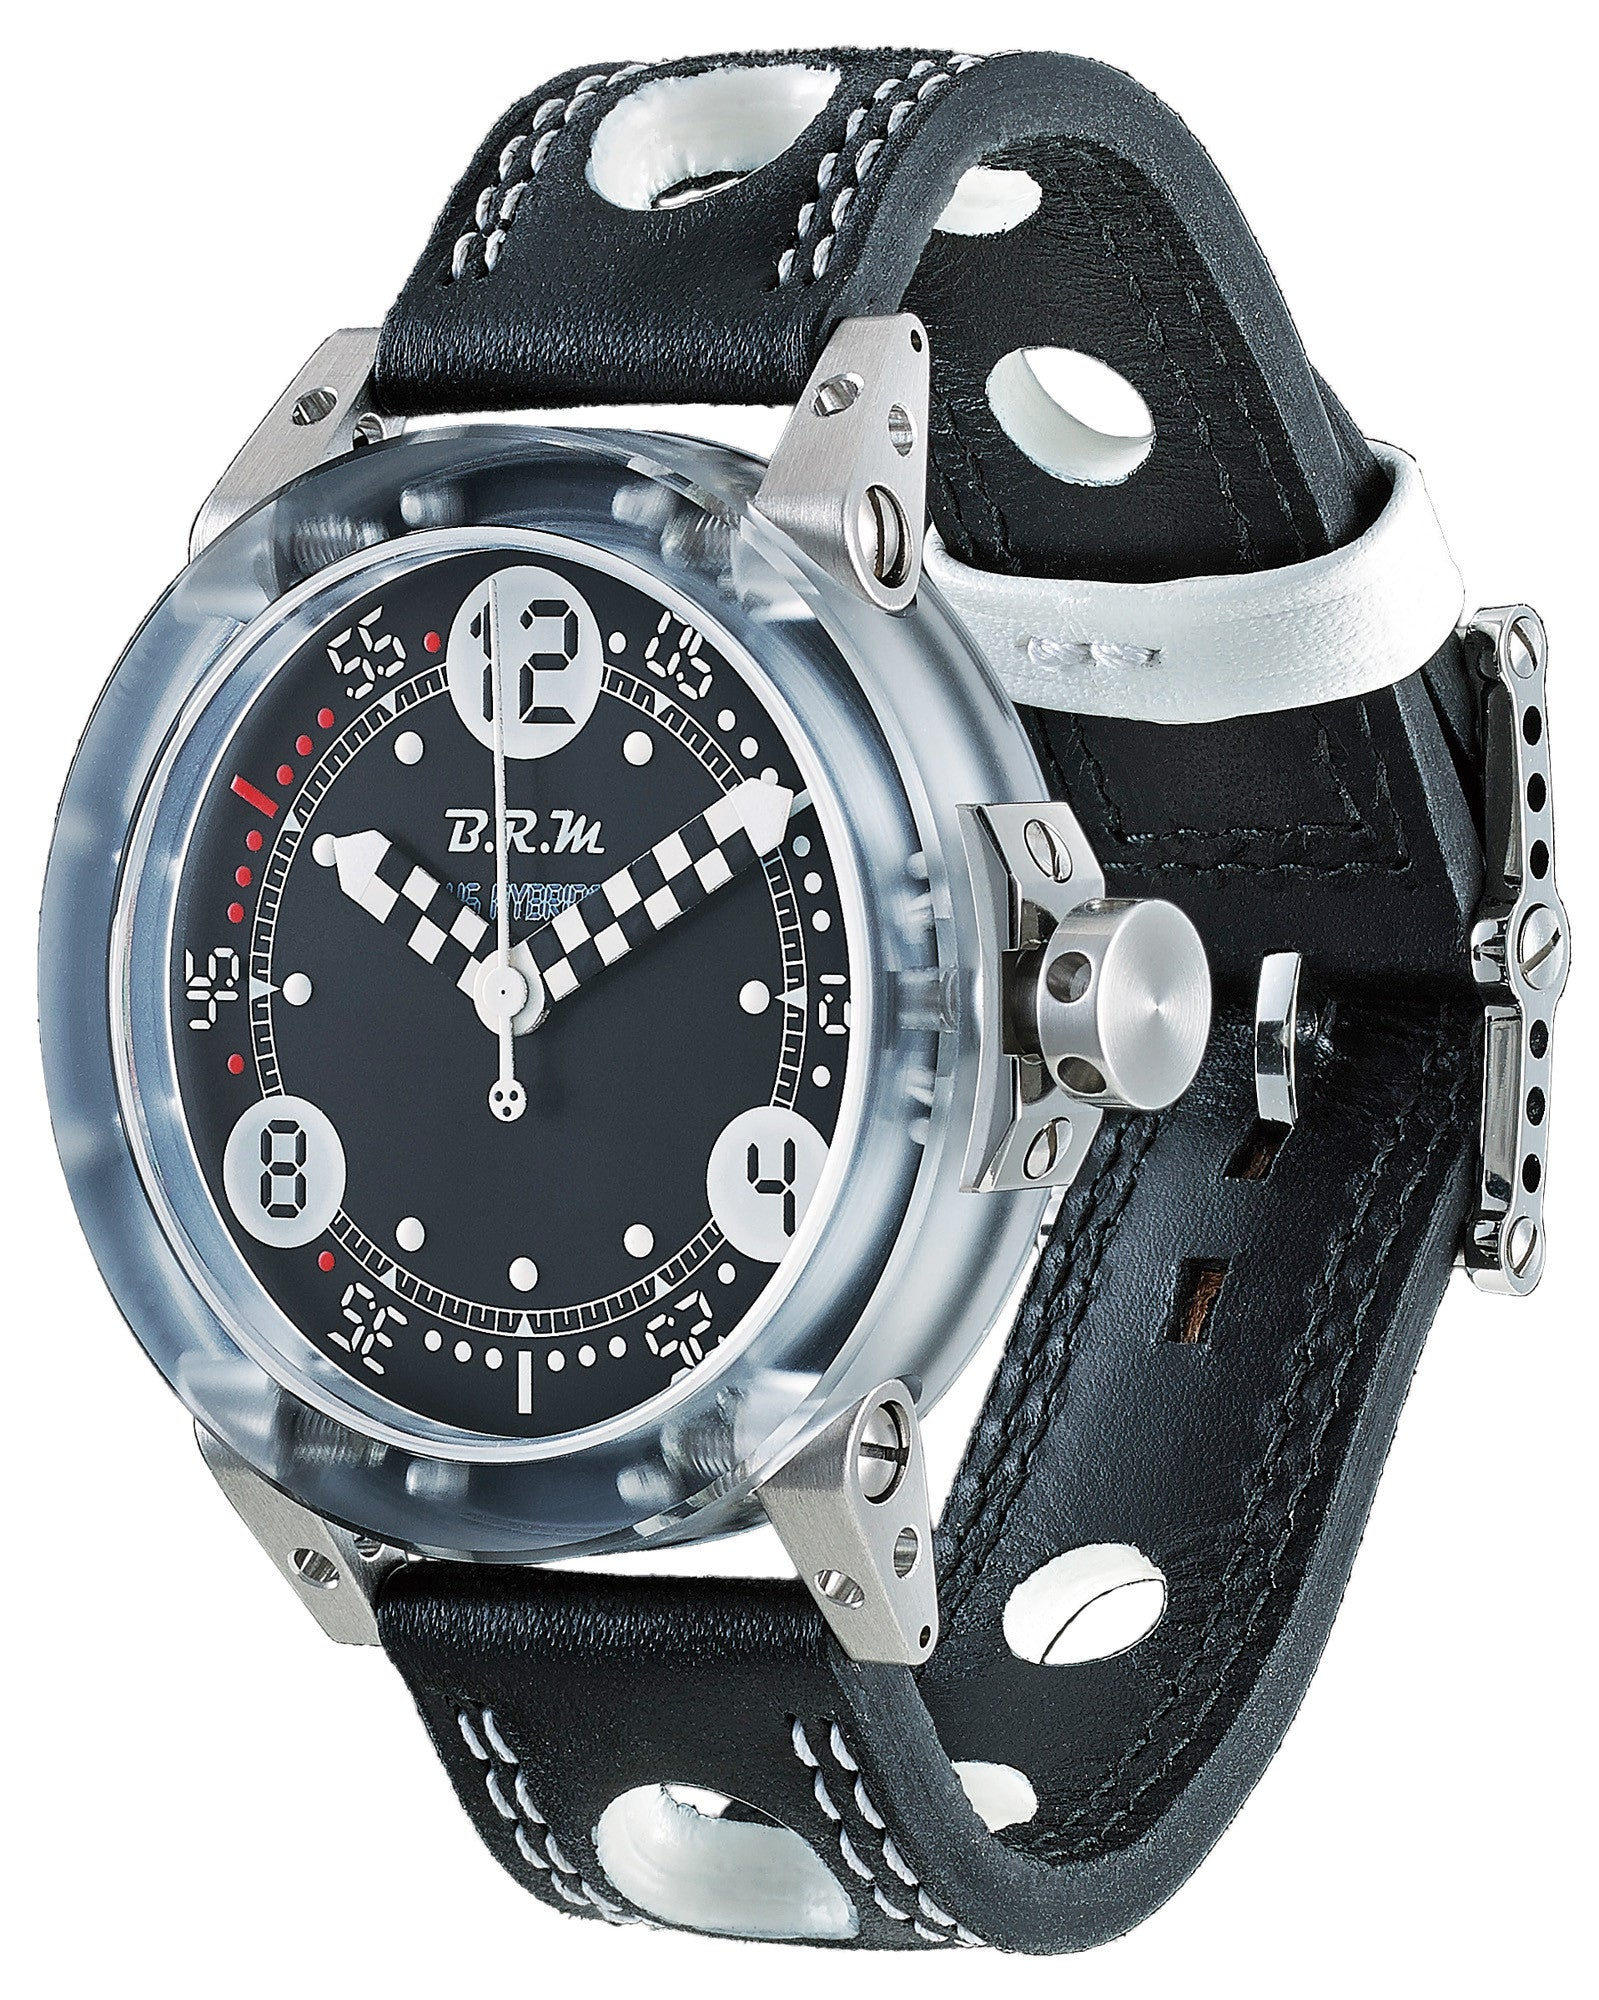 B.R.M. Watches V6-44 HYBRIDE MK